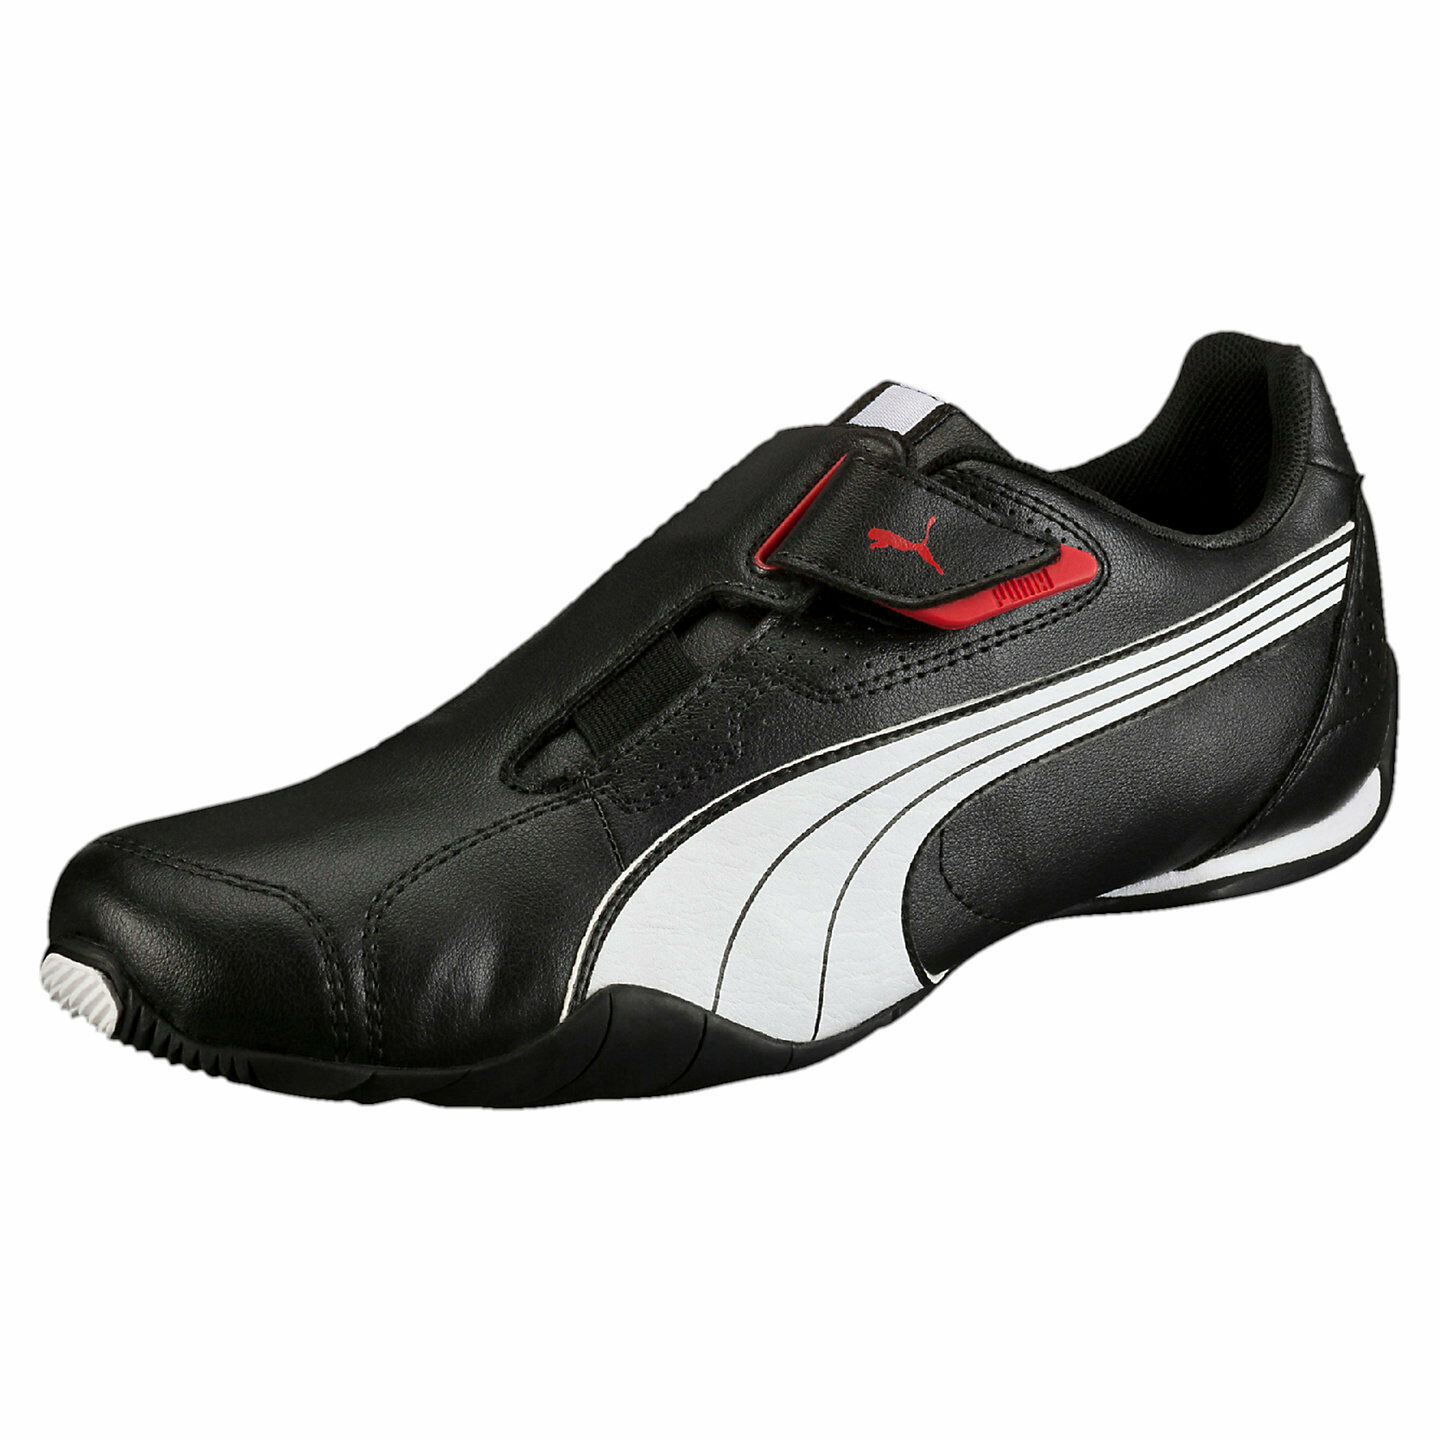 Men's PUMA REDON MOVE Casual Shoes, 185999 02 Sizes 9-13 black-white-high risk r